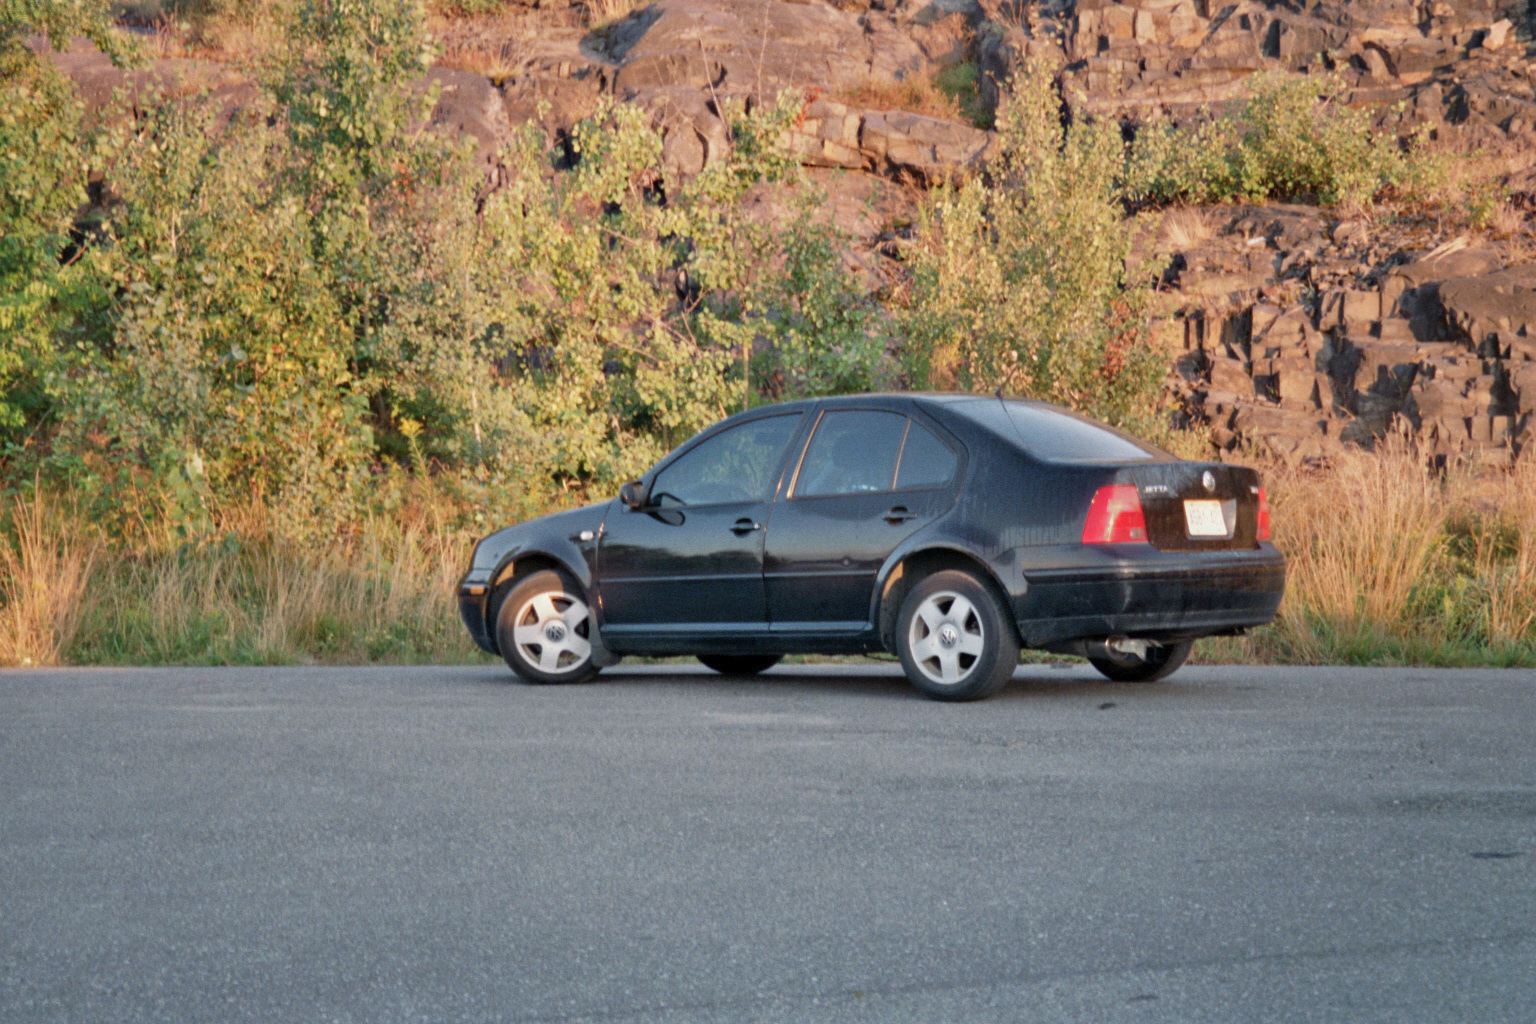 2004 volkswagen jetta wagon 2 0 automatic related. Black Bedroom Furniture Sets. Home Design Ideas